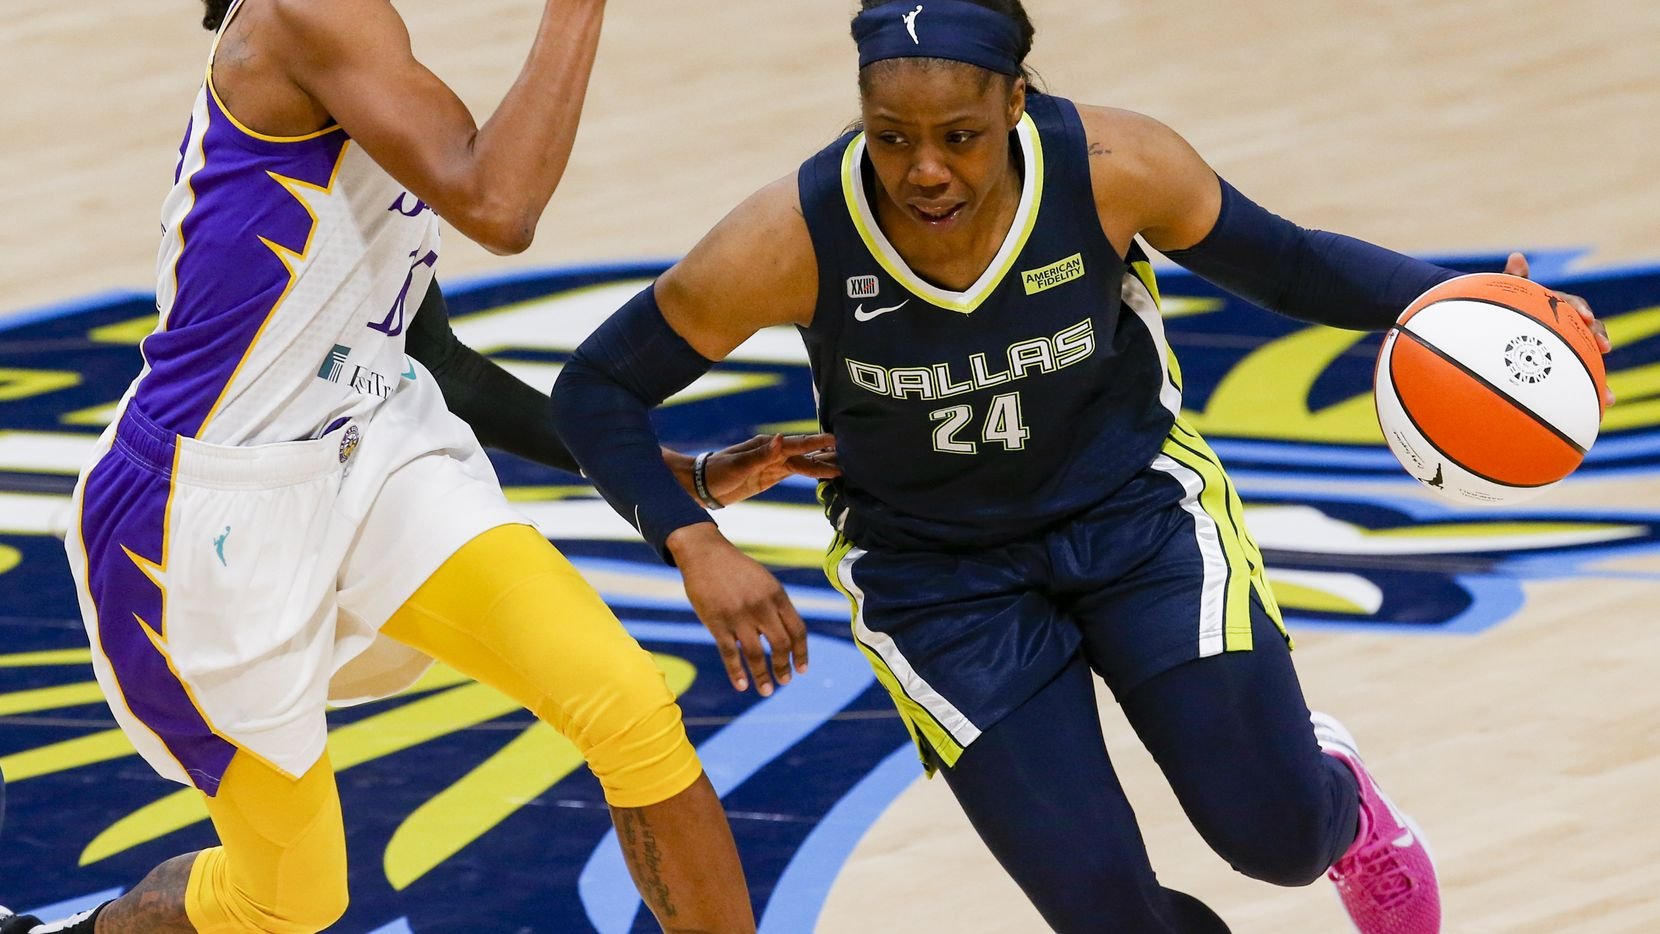 Dallas Wings guard Arike Ogunbowale (24) dribbles past Los Angeles Sparks guard Brittney Sykes (15) during the first quarter at College Park Center on Tuesday, June 1, 2021, in Arlington.